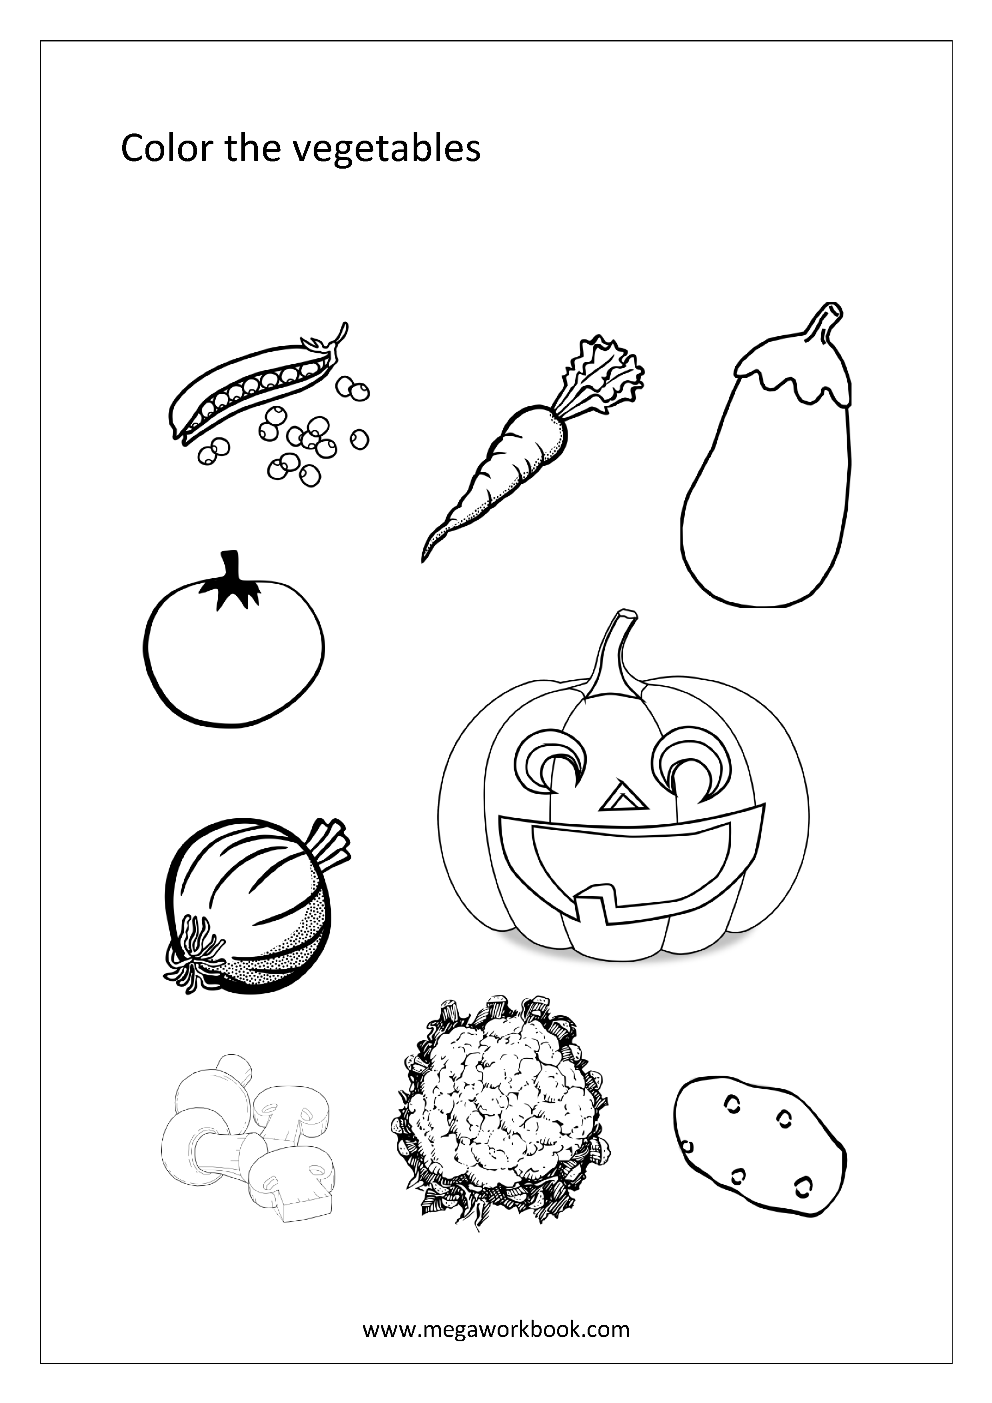 Fruit Coloring Pages - Vegetable Coloring Pages - Food ...